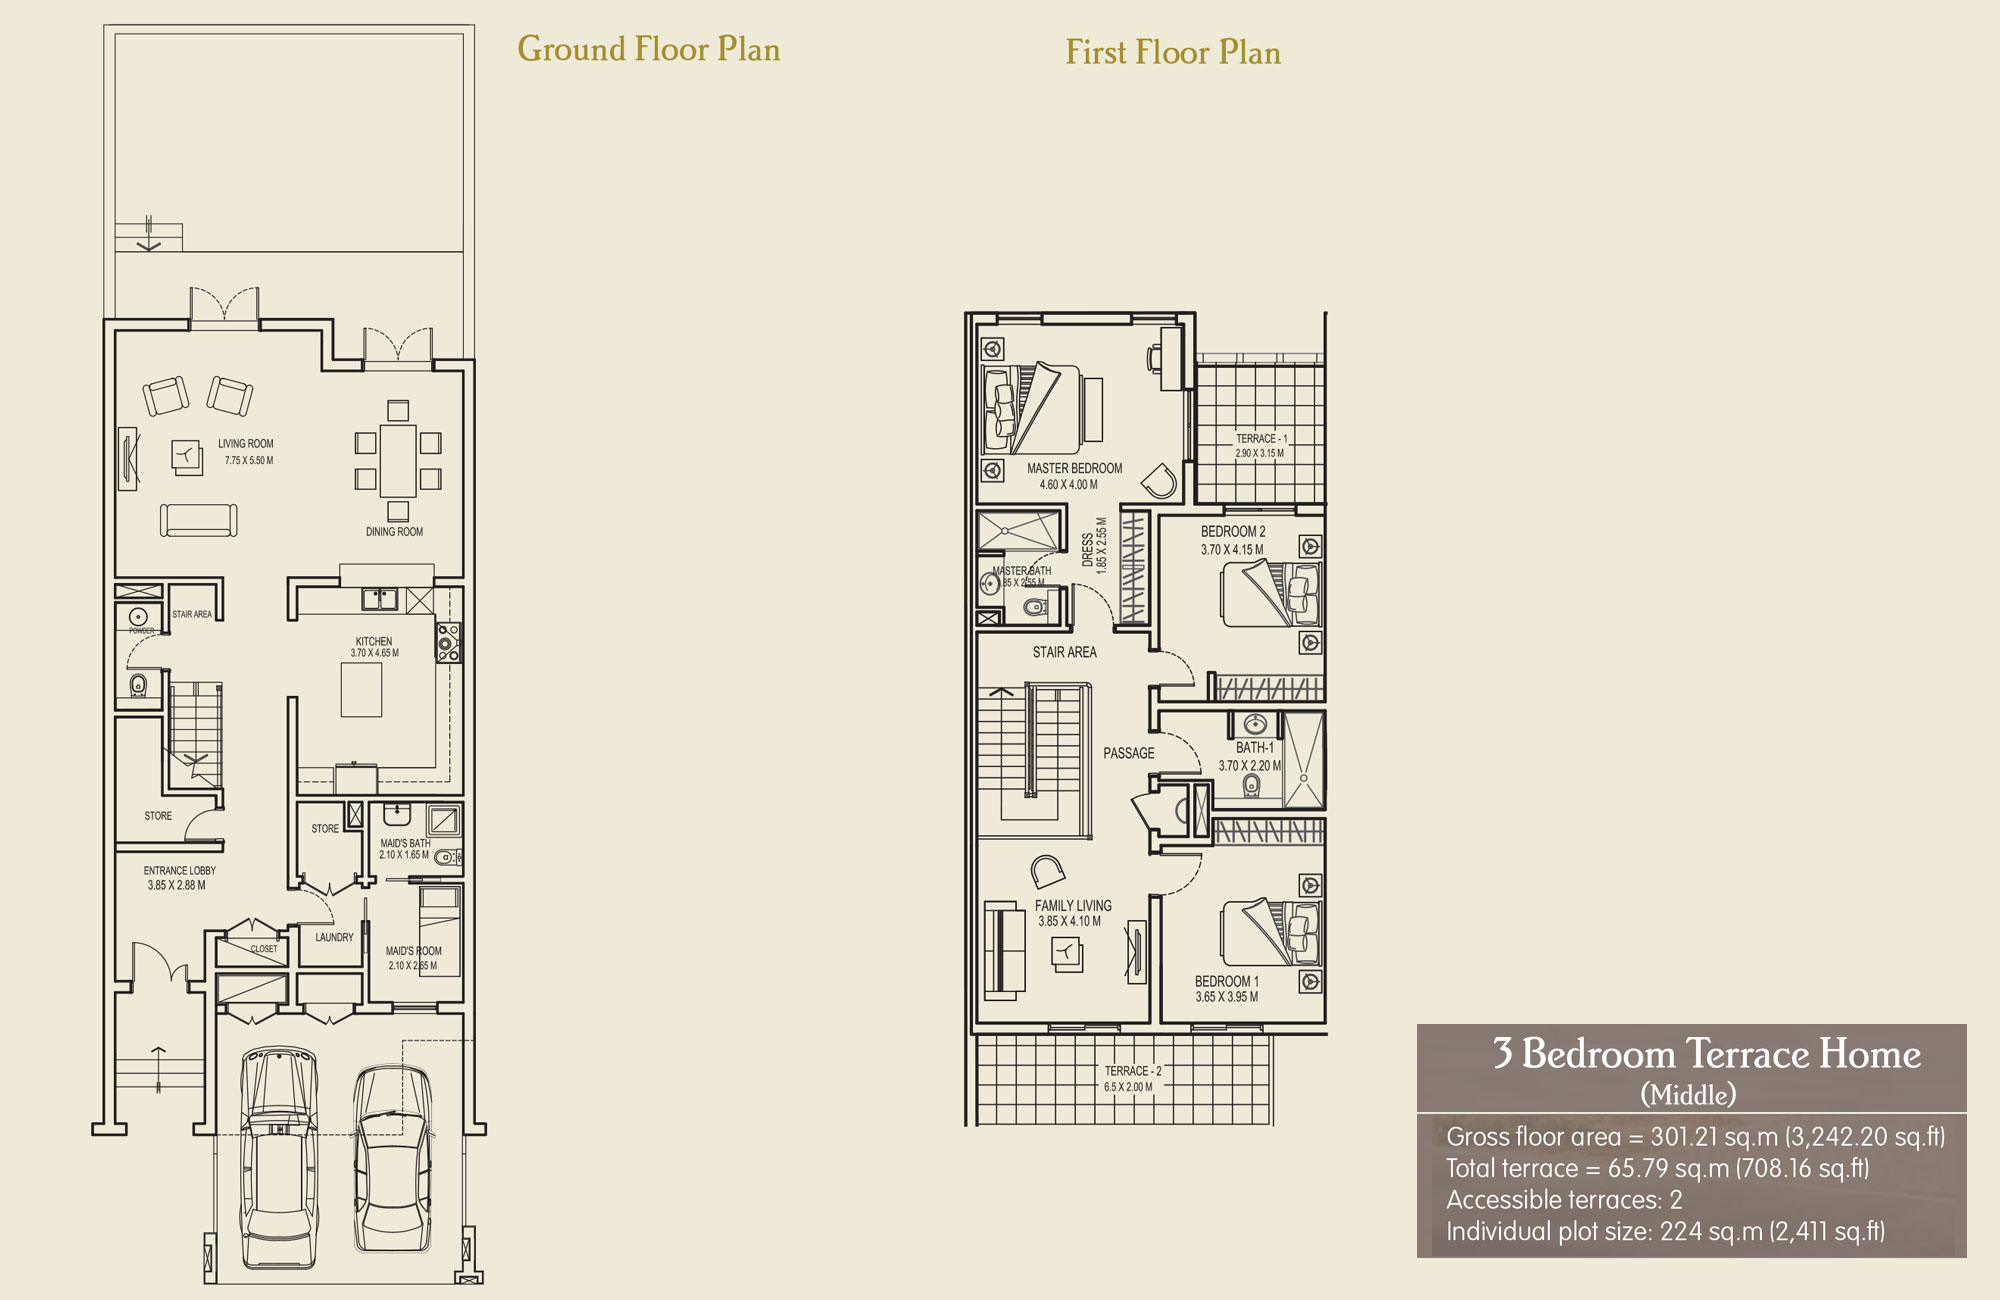 3 Bedroom Terrace Home (Middle), Size 3242.20 sq.ft.